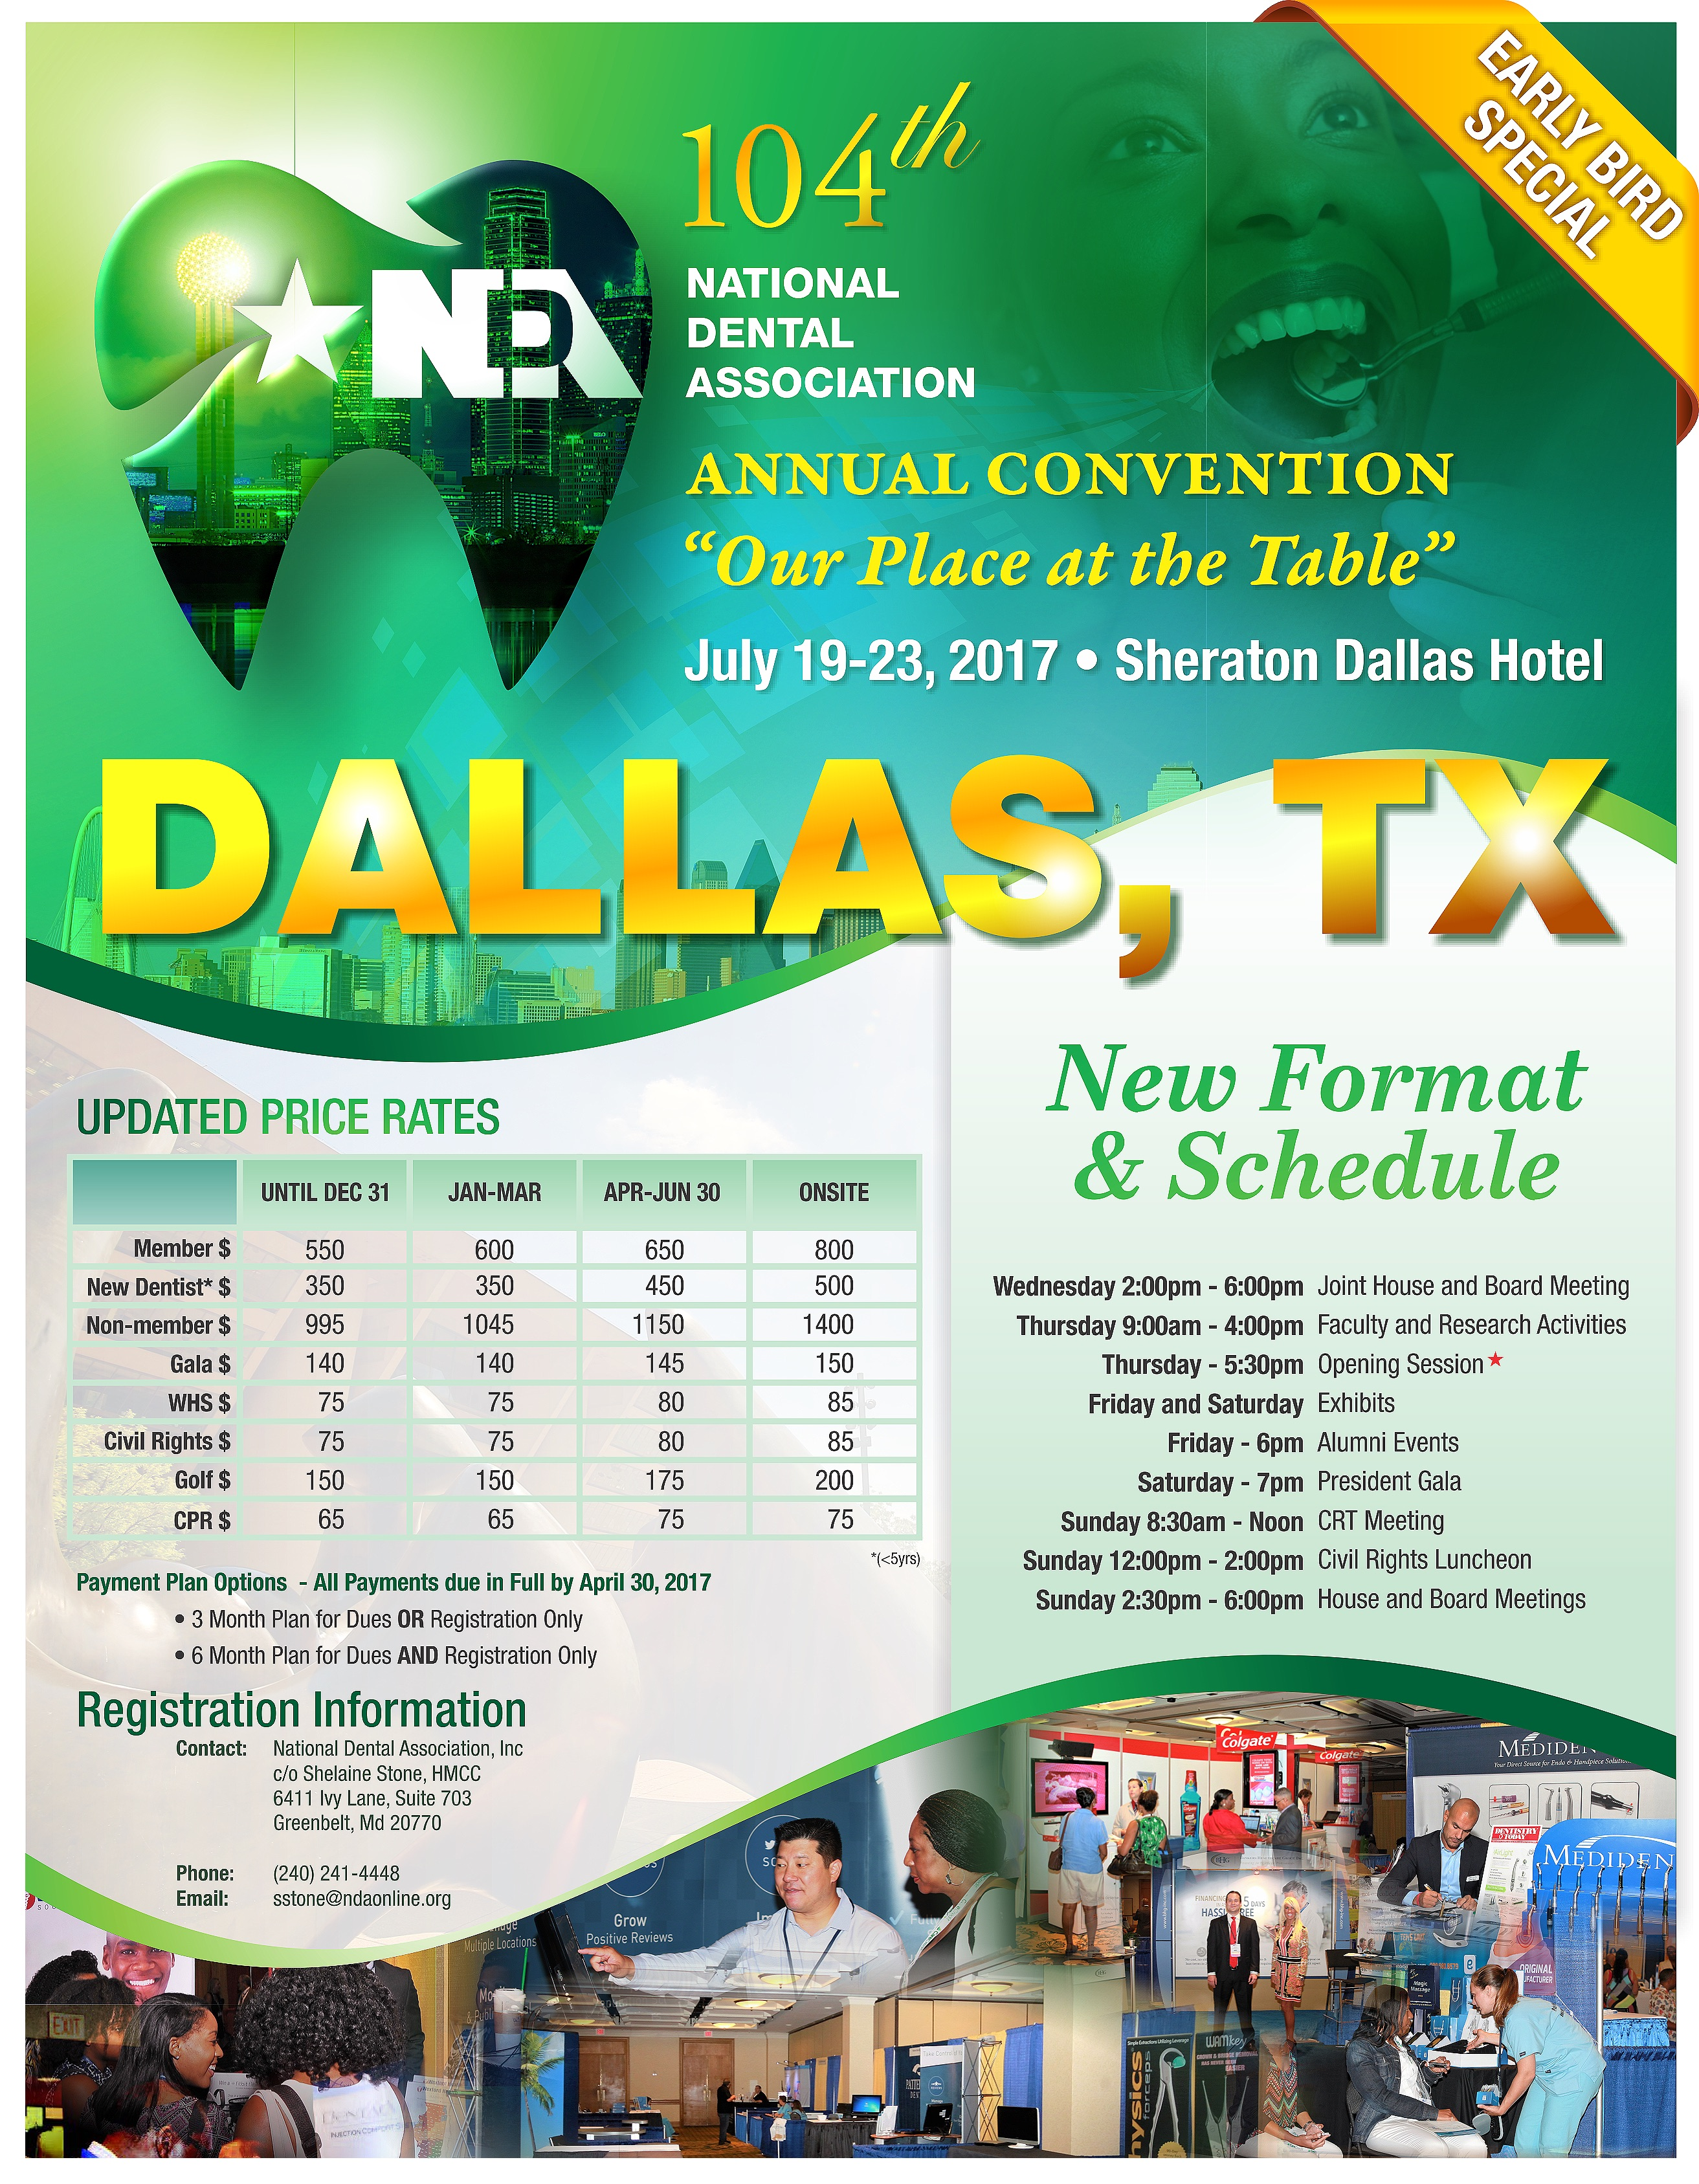 2017-convention-rates-and-new-format-schedule-flyer-copy